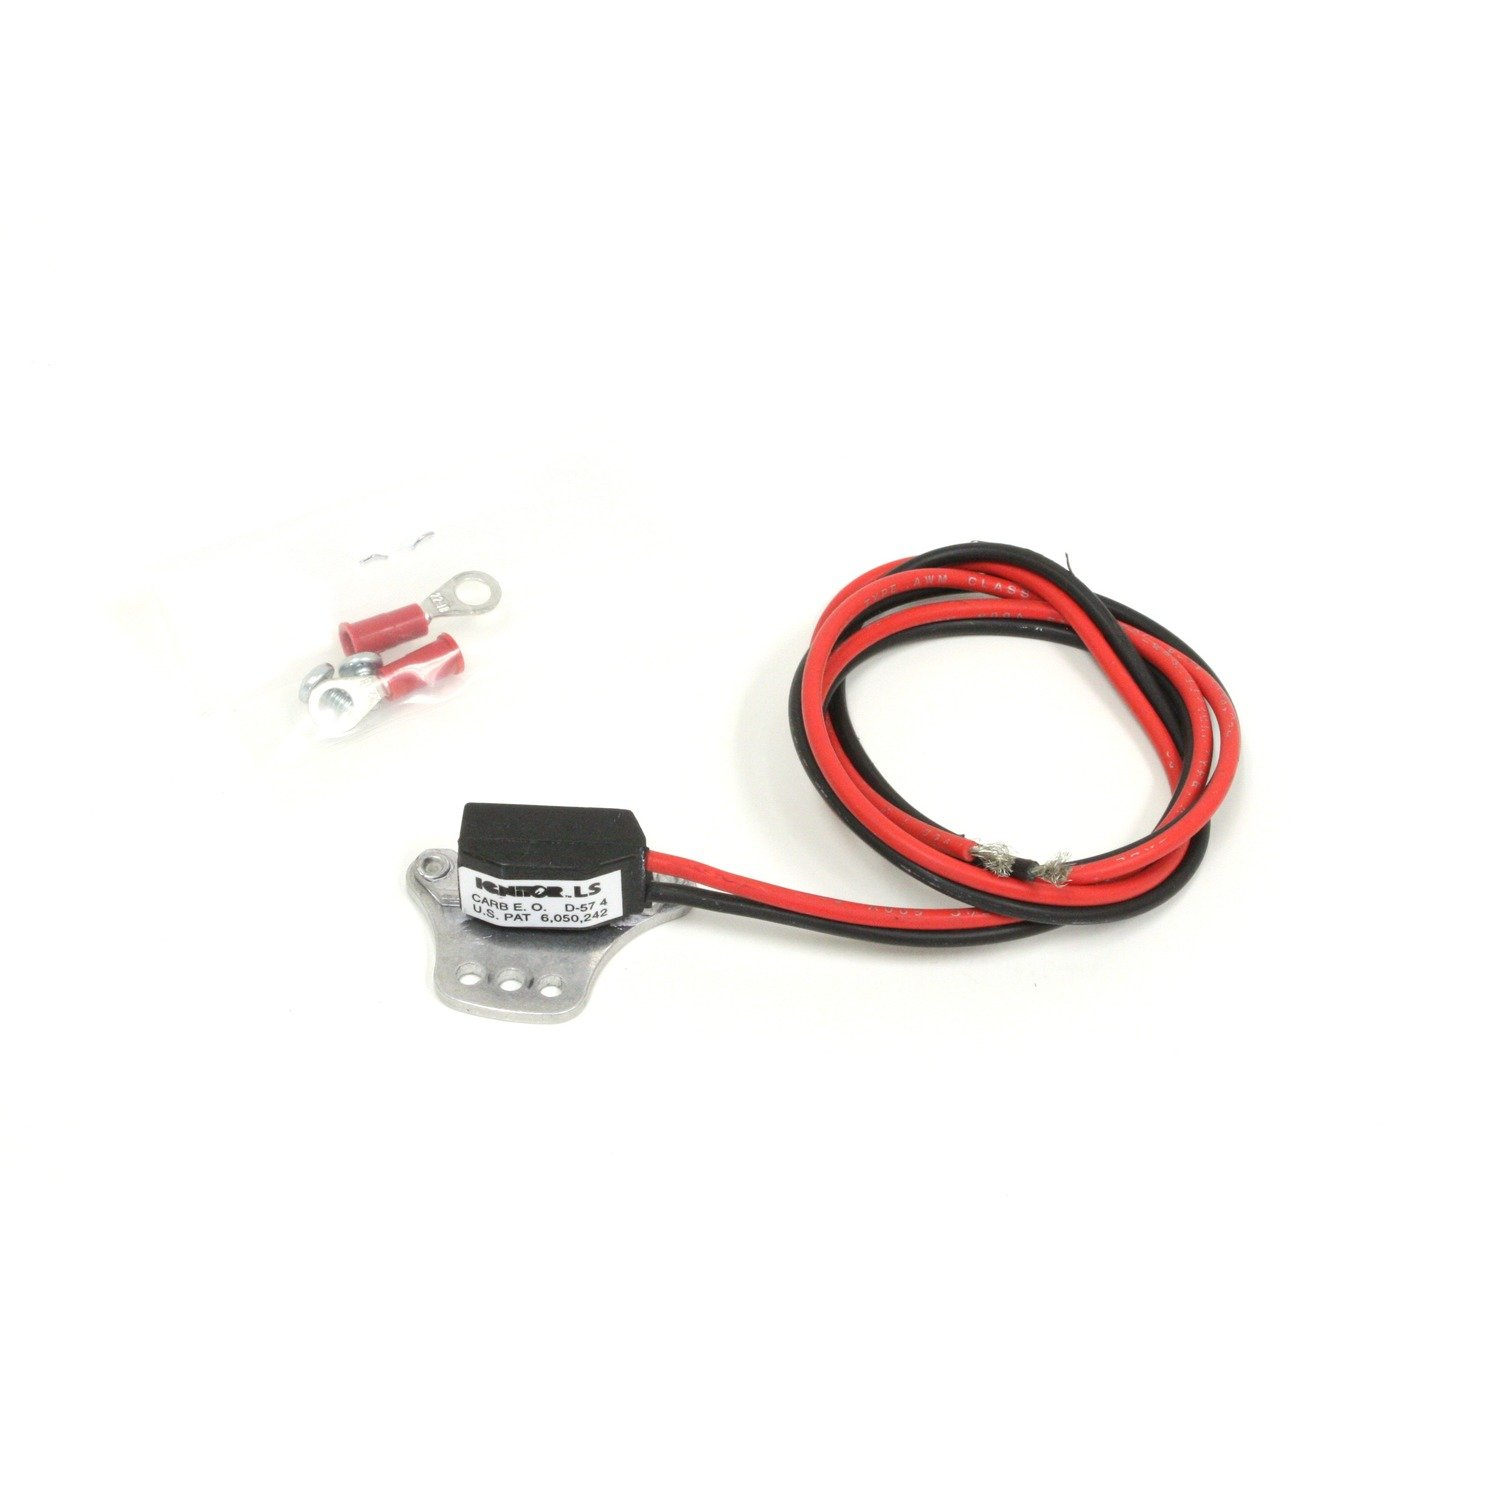 Pertronix 2563LS Ignitor for Autolite IGS 6 Cylinder Engine